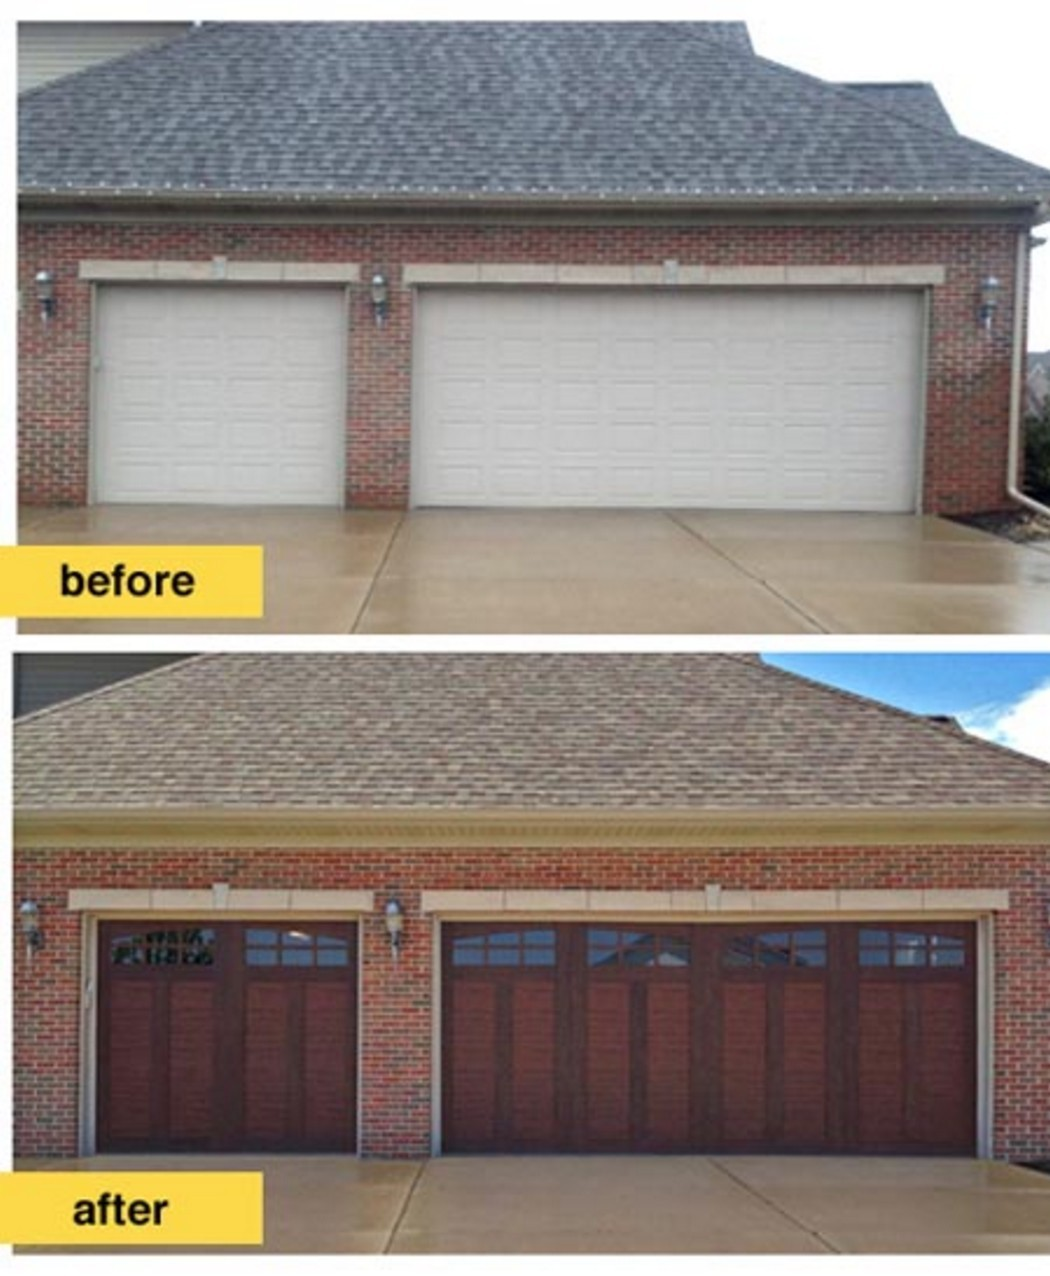 Garage door makeover ideas garrdenoflove for Garage transformation